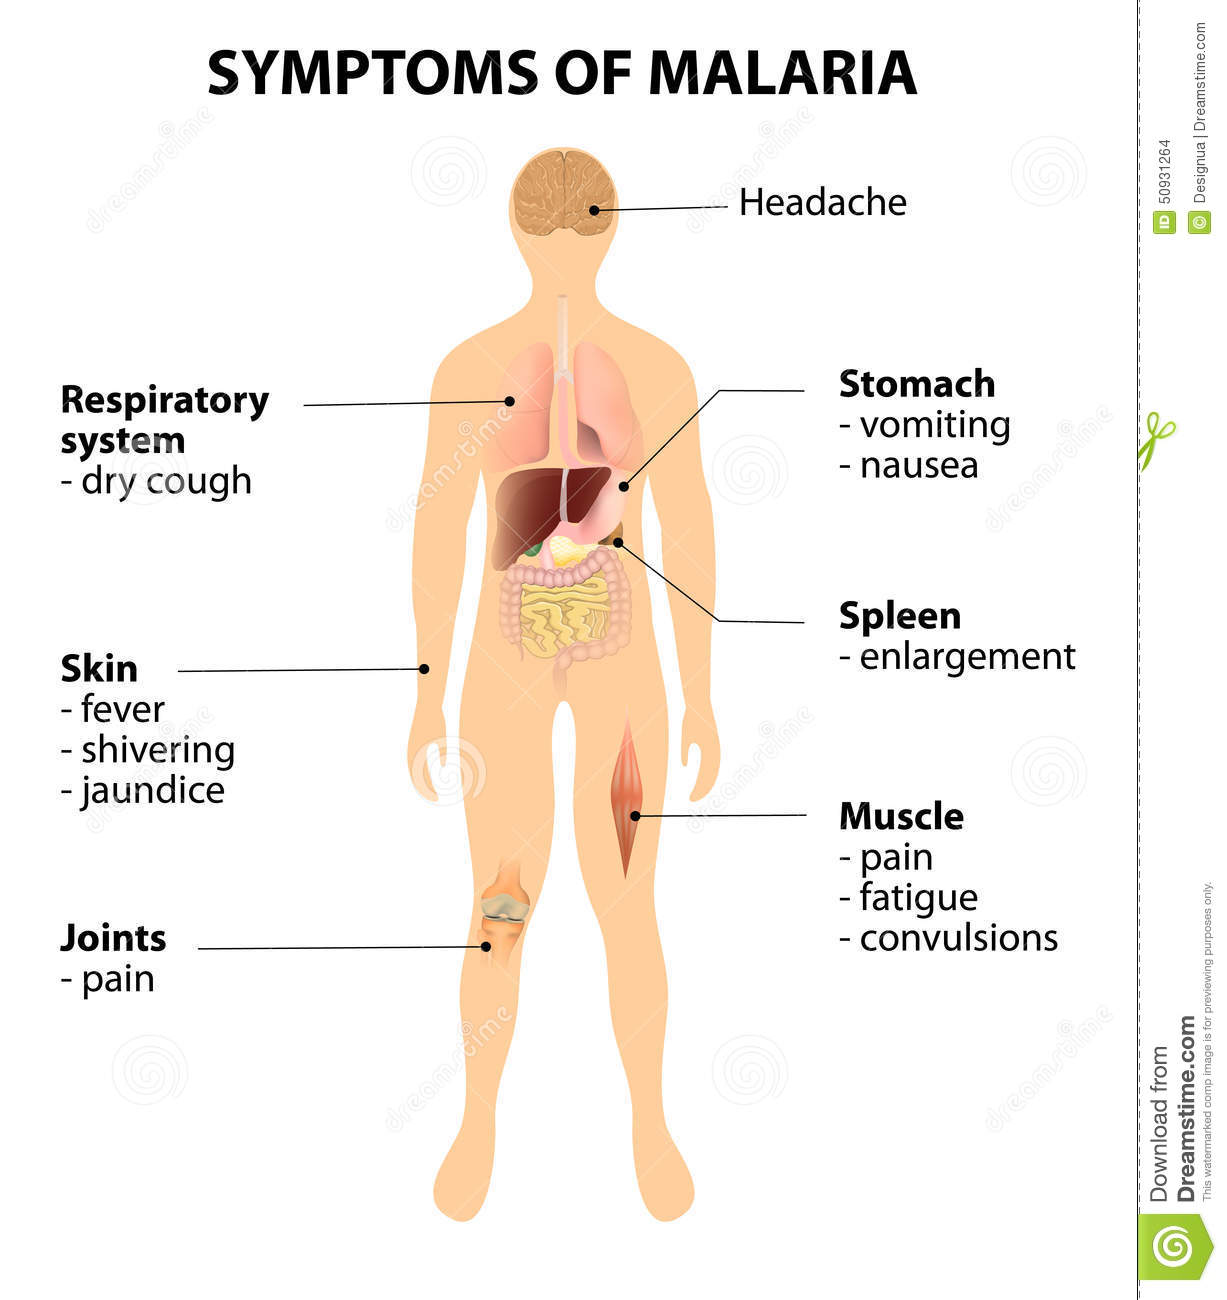 symptoms and treatment of malaria Malaria is a life-threatening mosquito-borne blood disease caused by a plasmodium parasite it is transmitted to humans through the bite of the anopheles mosquito once an infected mosquito bites a human, the parasites multiply in the host's liver before infecting and destroying red blood cells.